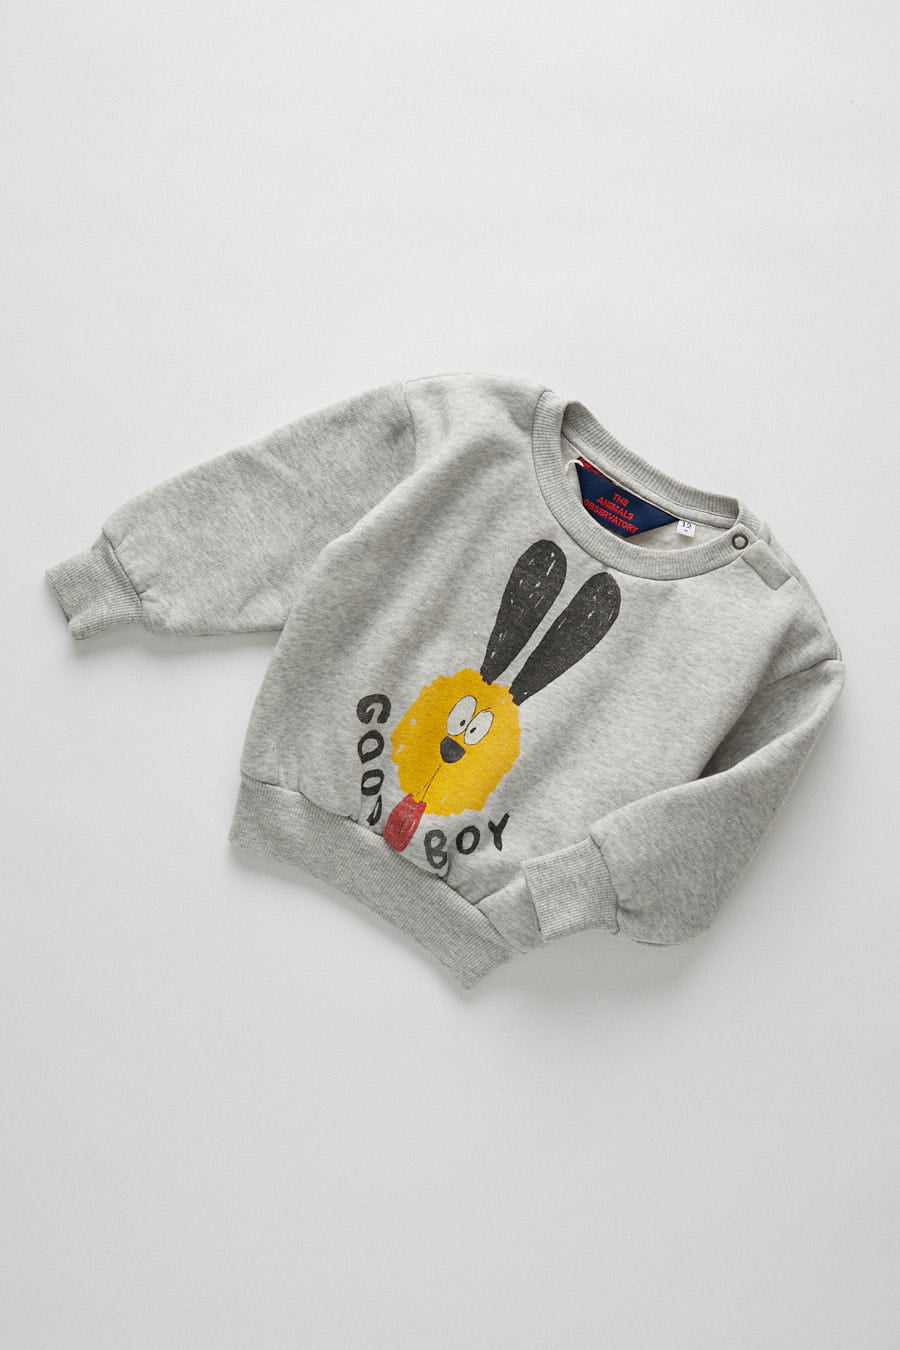 baby sweatshirt - dog